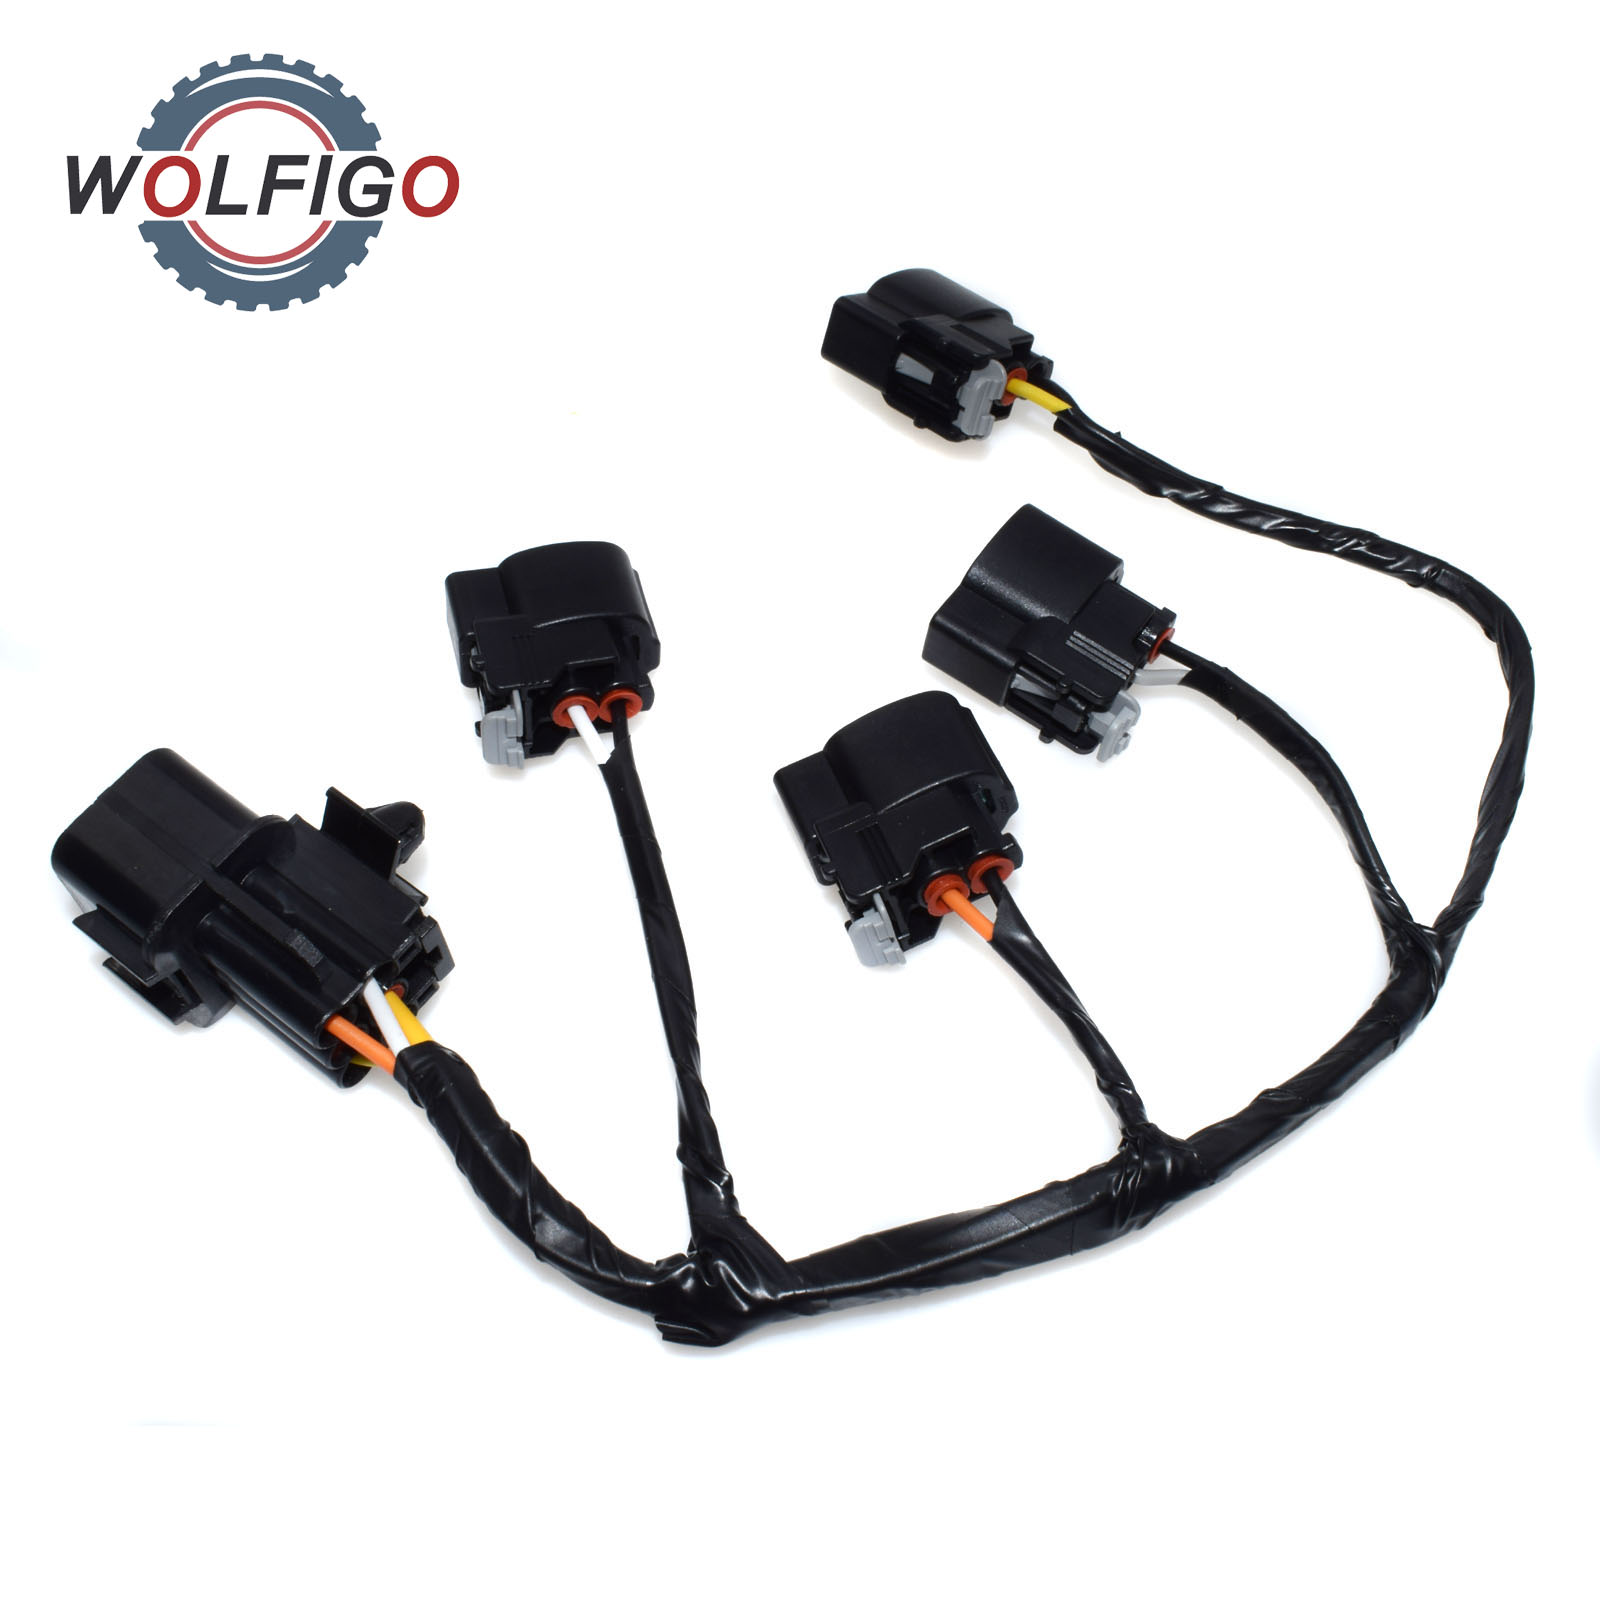 Wolfigo New Ignition Coil Wire Harness For Hyundai Veloster KIA Rio Soul 273502b000 27350 2b000 27301: Hyundai Veloster Wiring Harness At Executivepassage.co